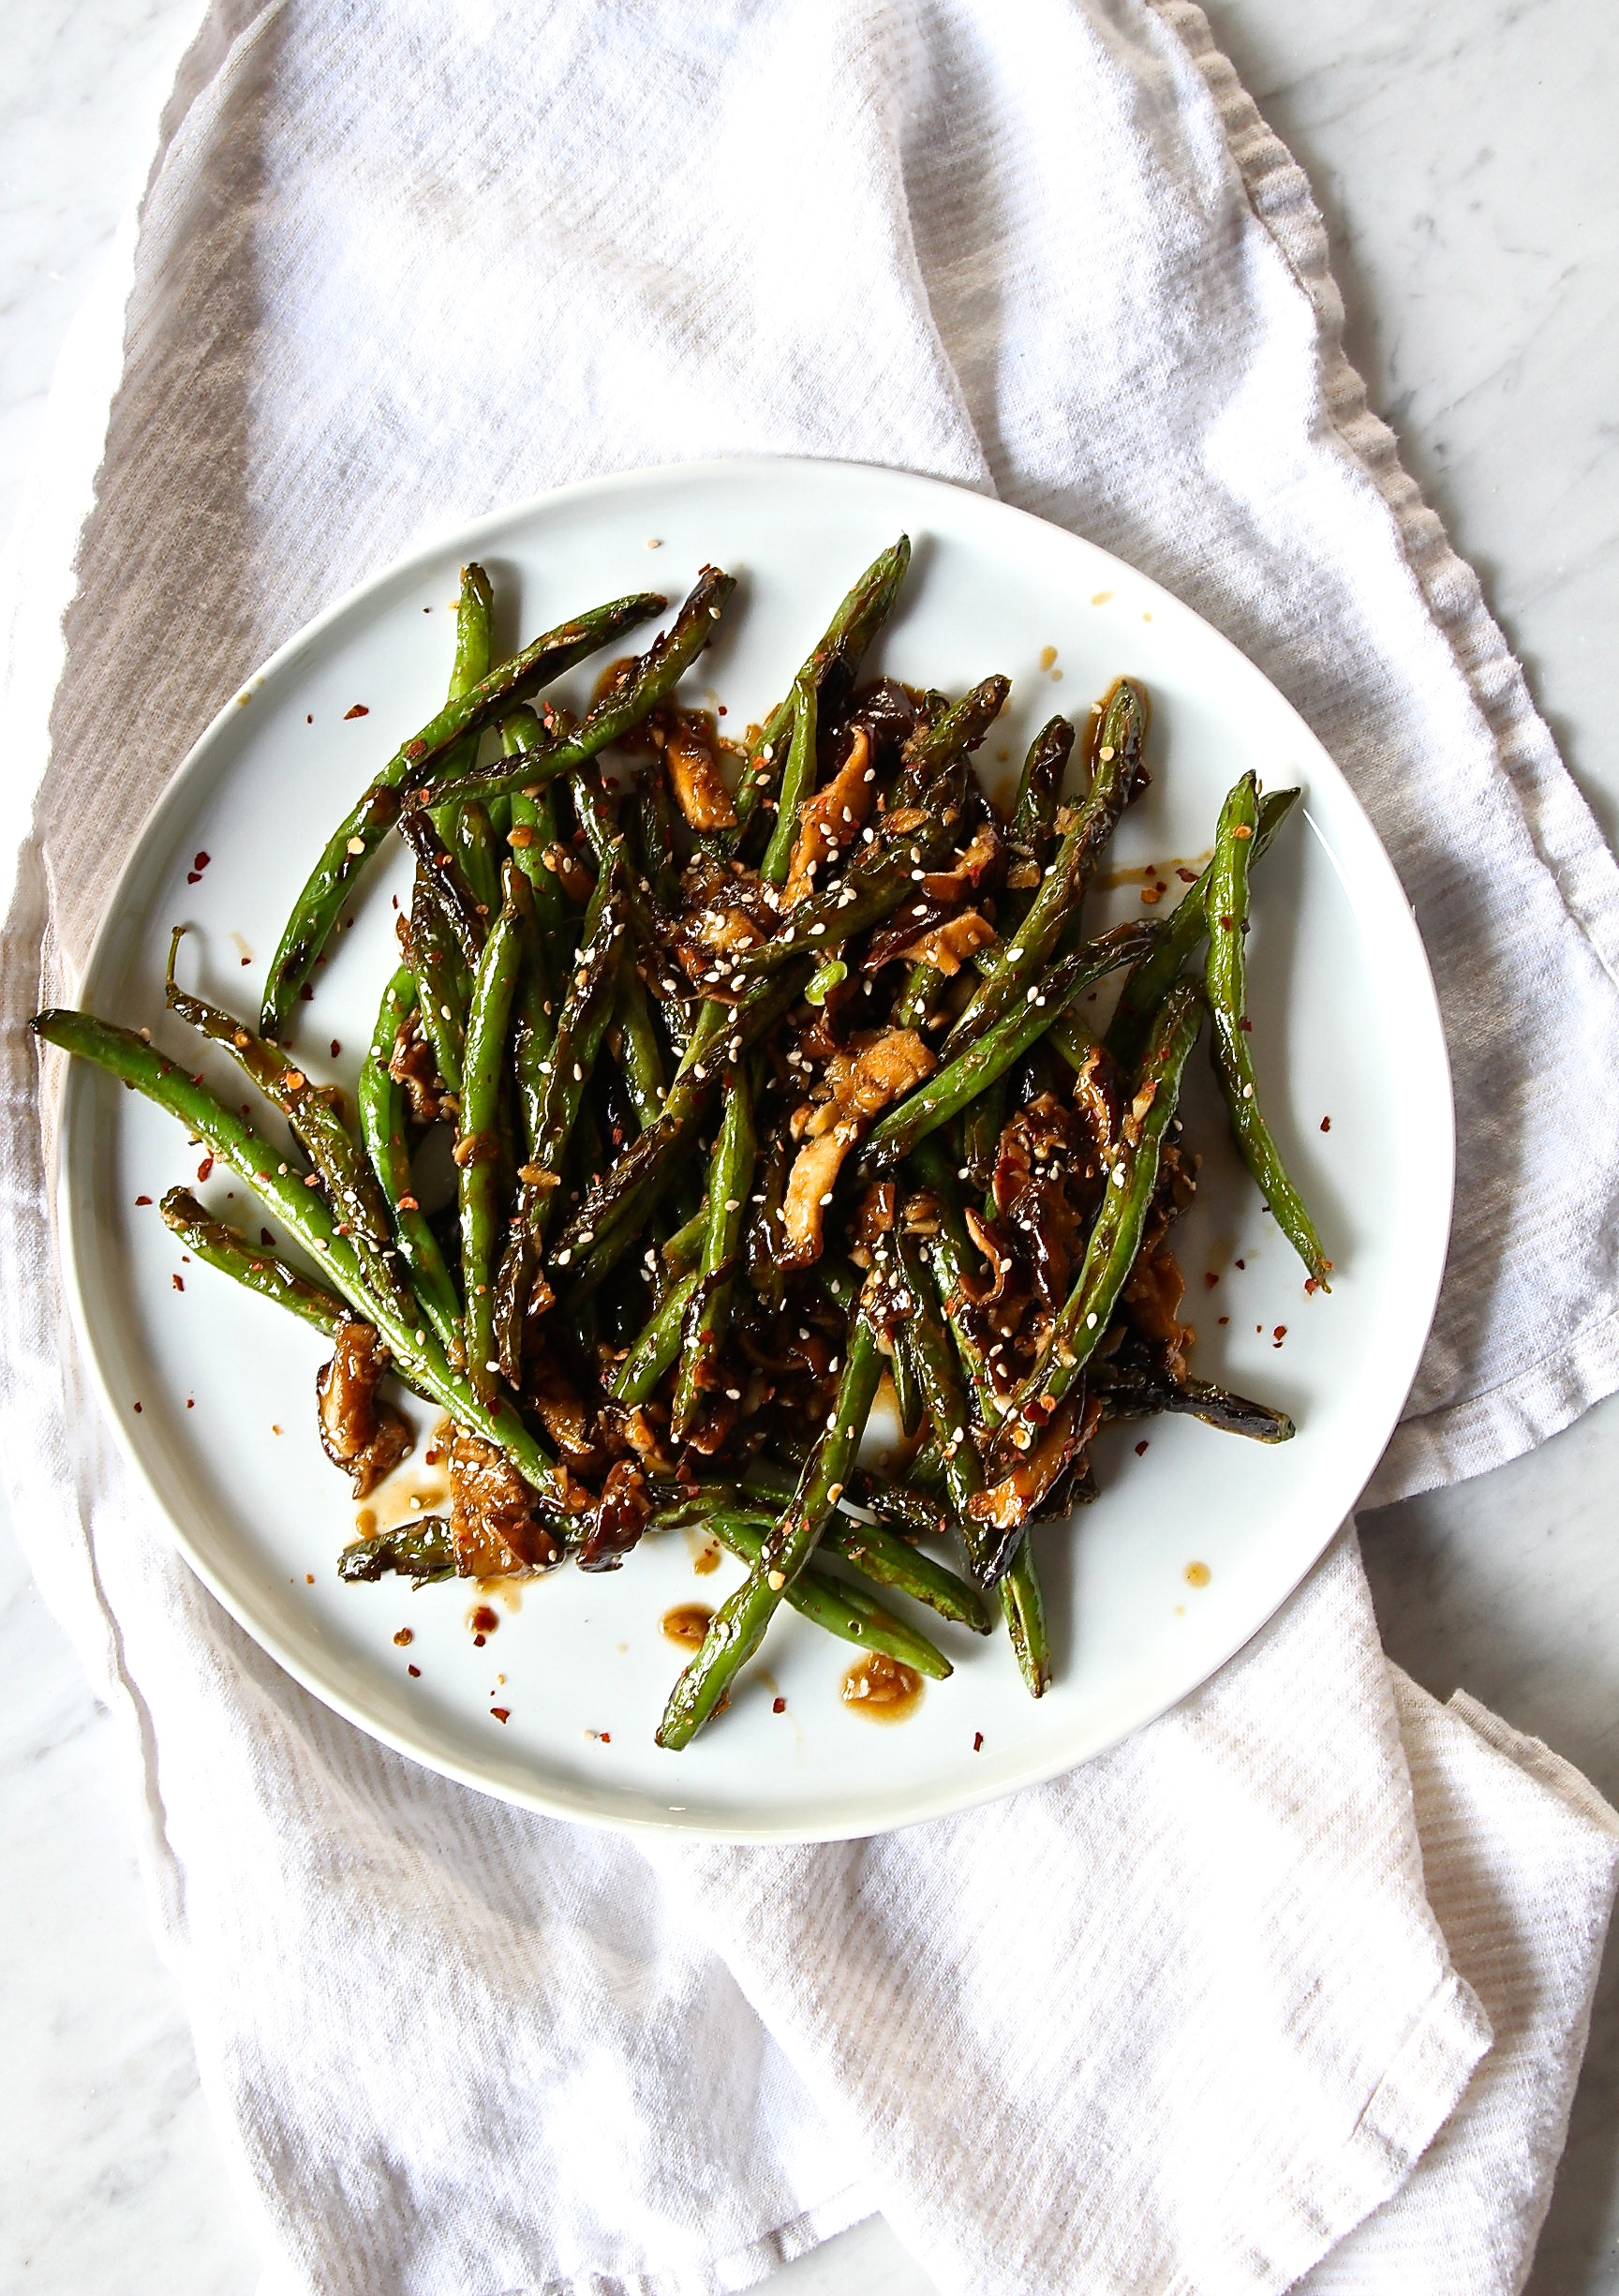 Stir-Fried Szechuan String Beans with Shiitake Mushrooms